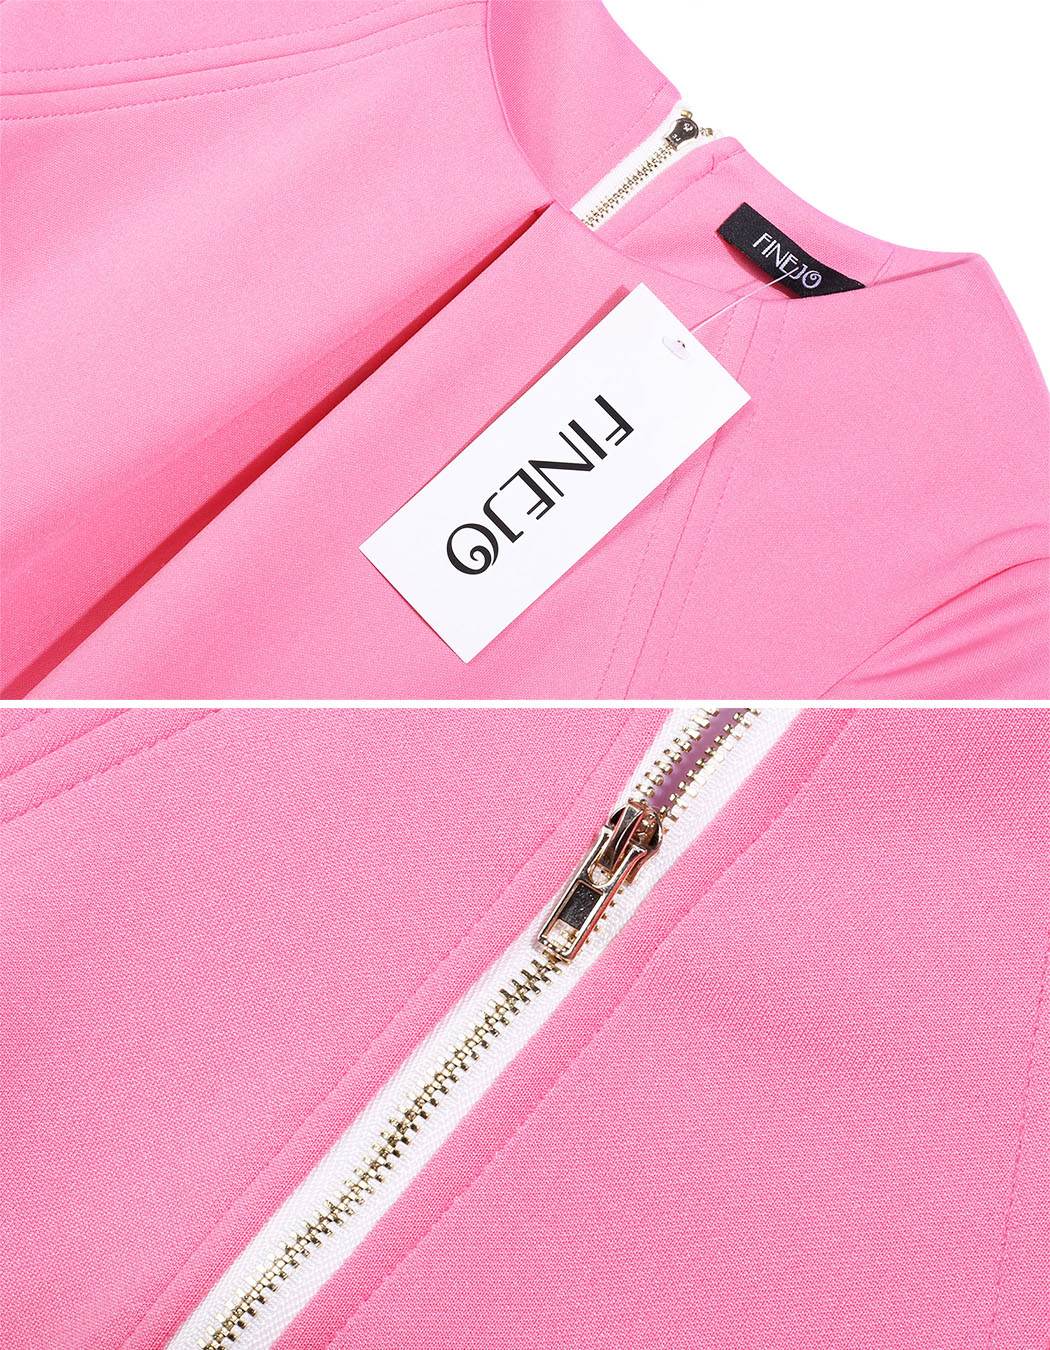 Finejo Spring Autumn Sweet Ladies Leisure Dress Long Sleeve Plated Ic Up1589qqkf Up1589q Up15890 Up1589 Qfn20 Hooded 2017 V Neck Bodycon Cotton Fit Button Solid Casual Party Pencil Plus Size Xxxlusd 1799 Piece